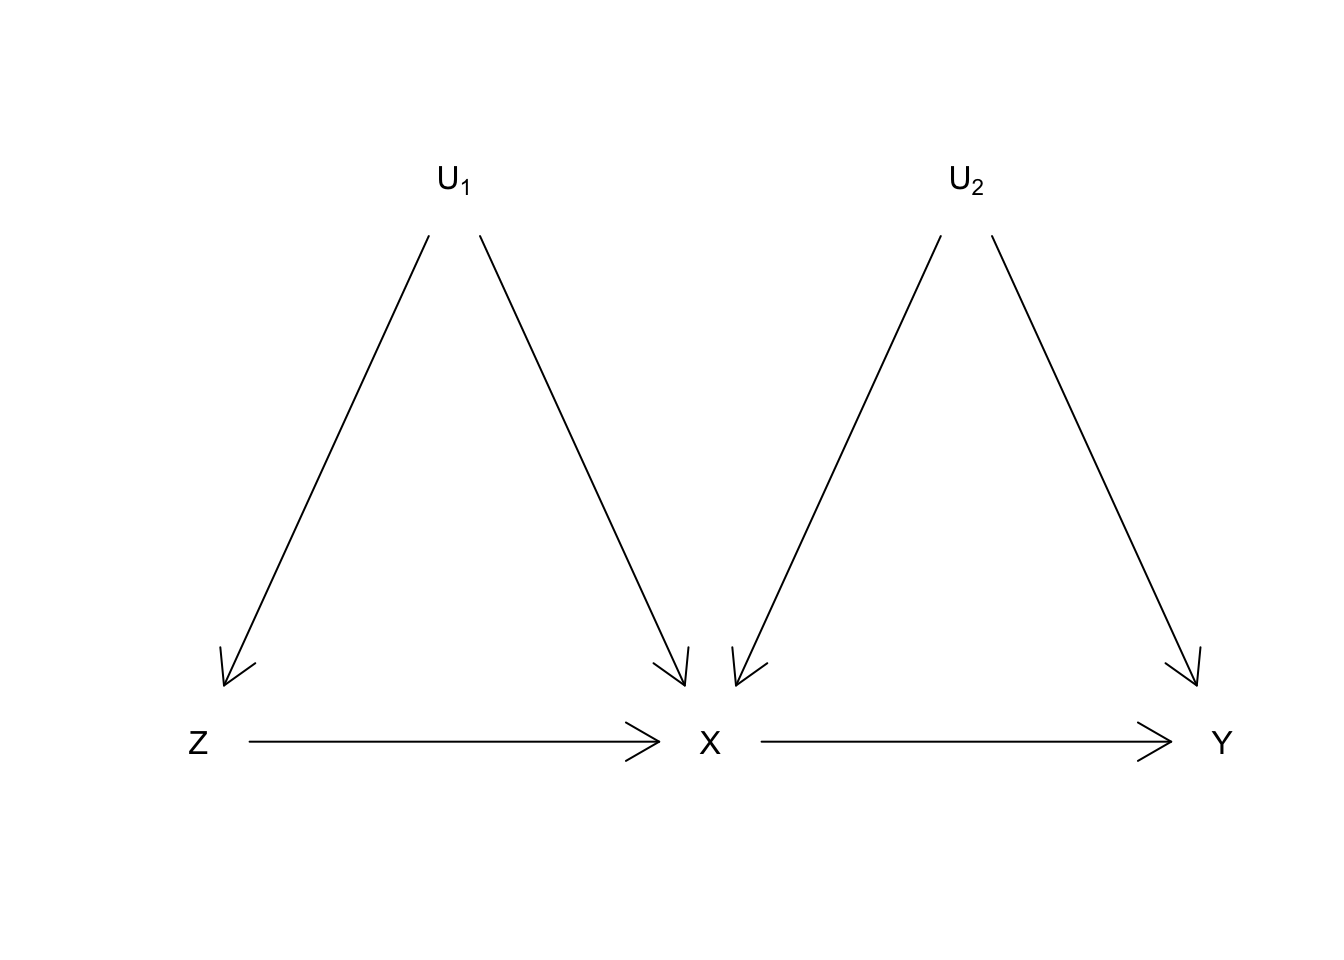 Figure: DAG for a non-randomized instrument. Z is an instrument for the effect of X on Y